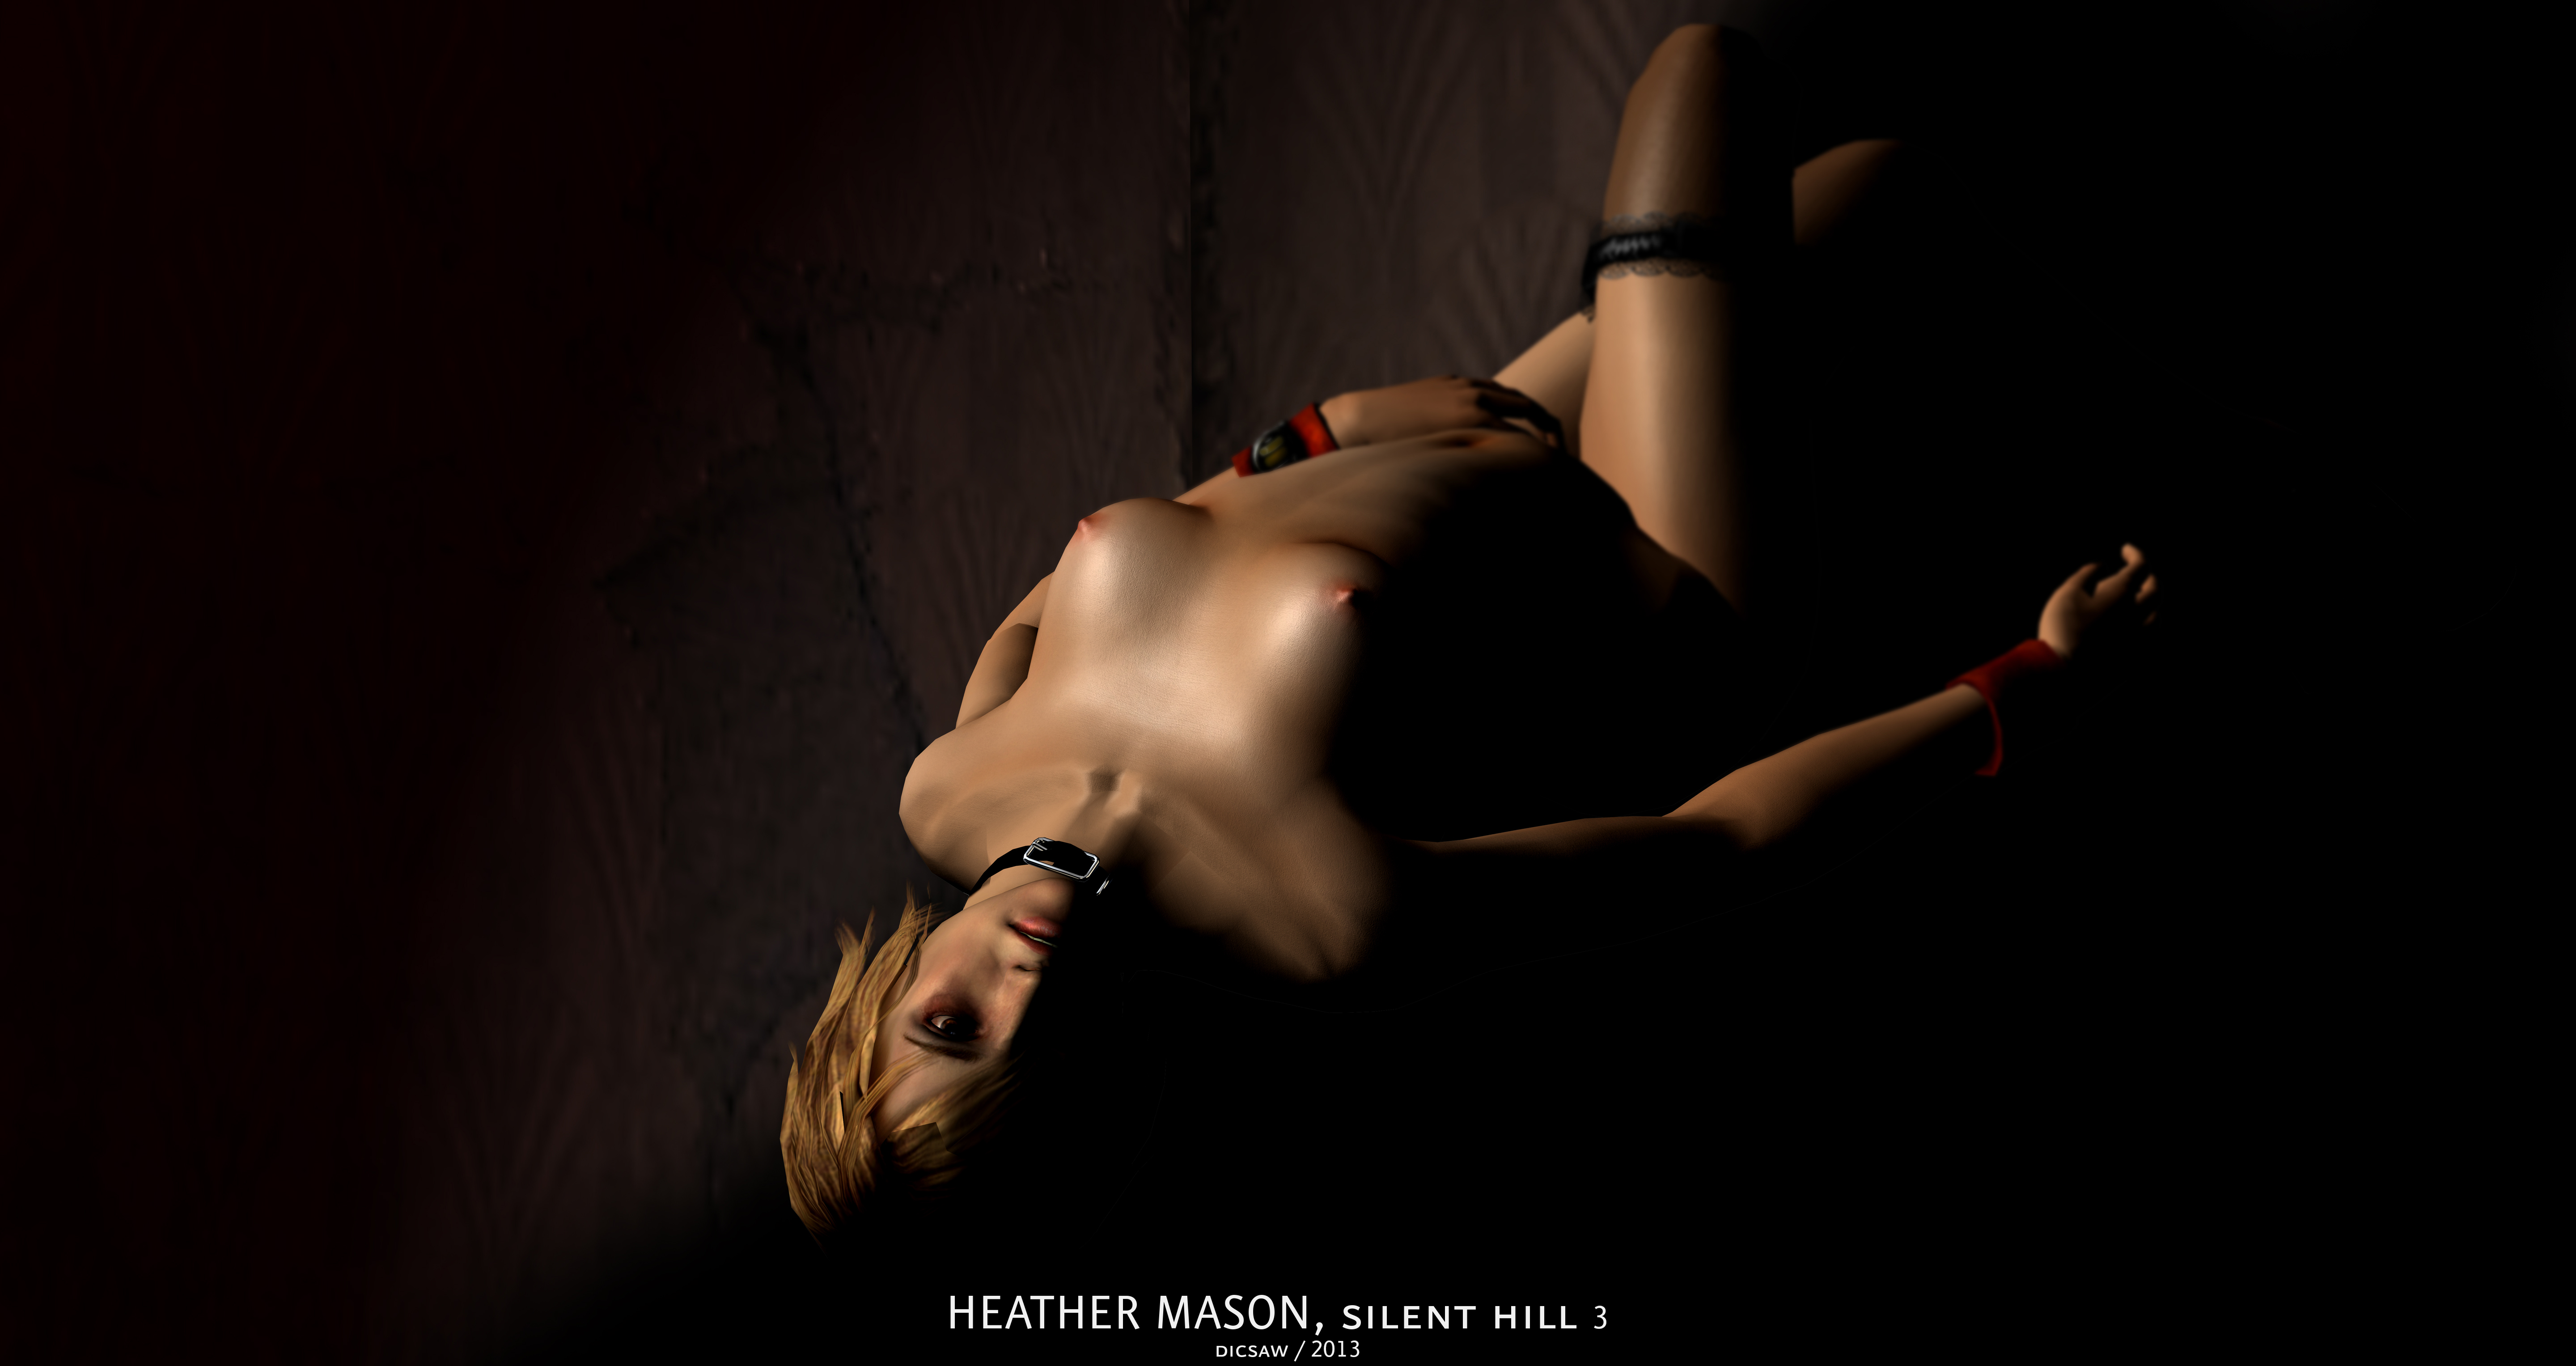 Silent hill porn fakes sexy movie